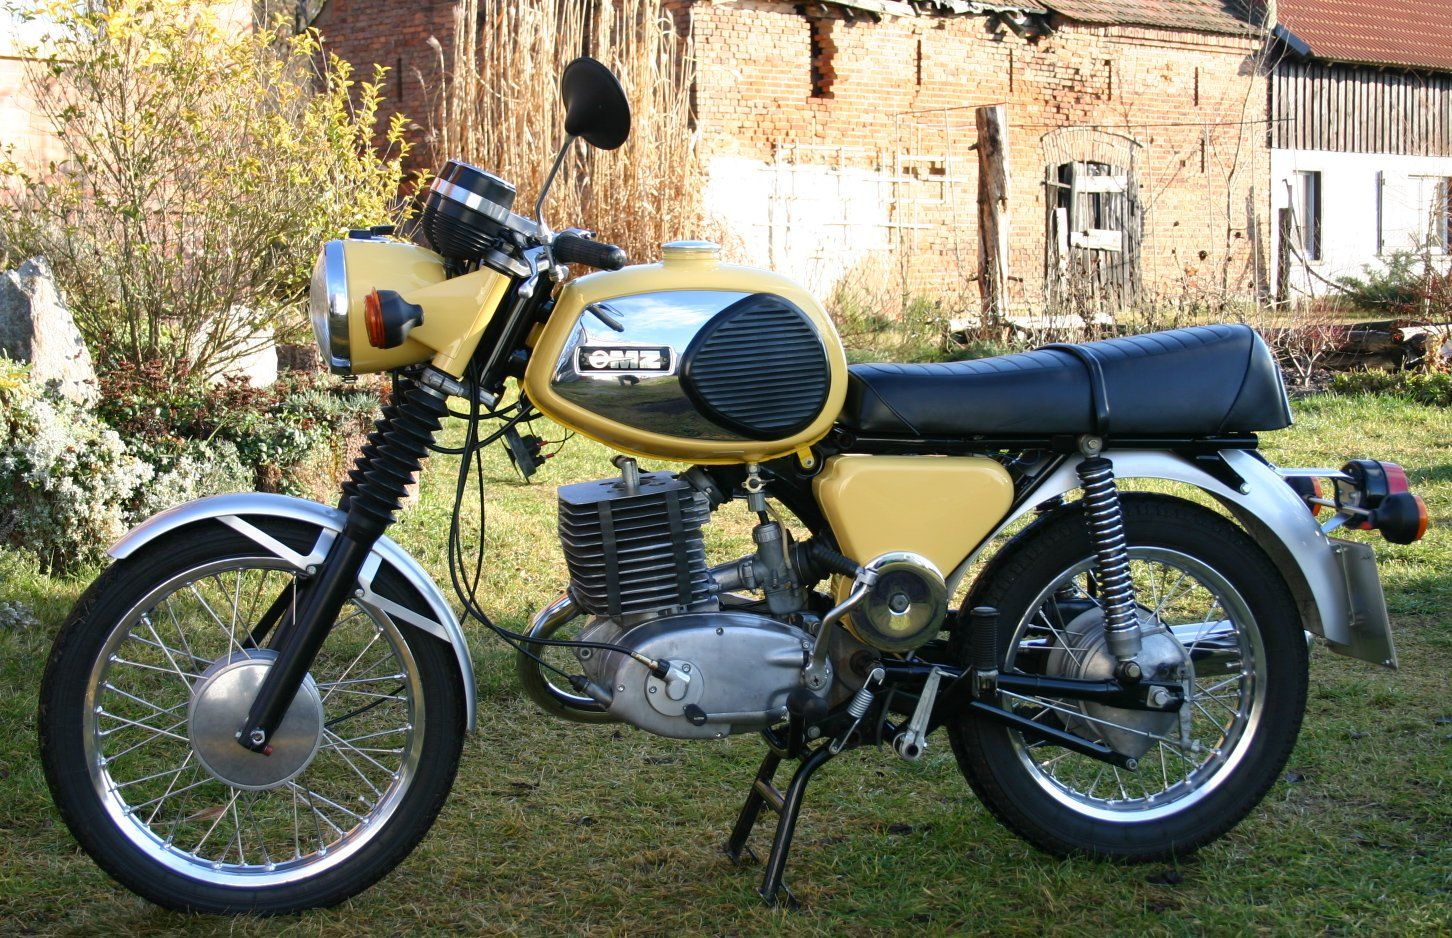 mz ts 250 1973 1974 motorcycles from saxony. Black Bedroom Furniture Sets. Home Design Ideas